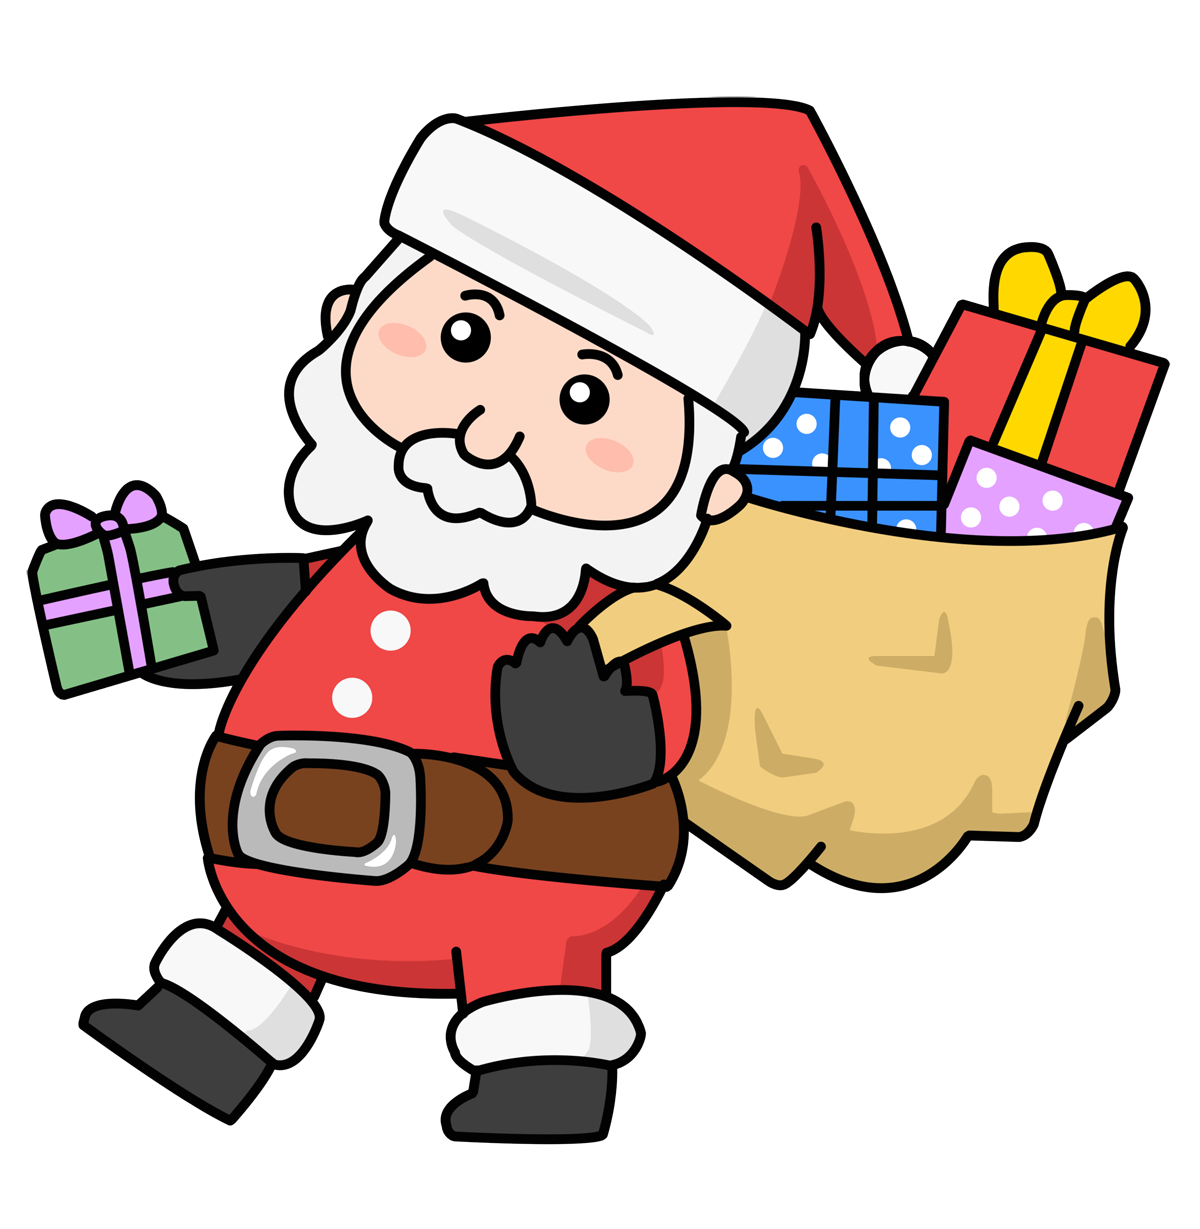 Free black and white clipart santa workshop jpg library stock Free Animated Santa Claus Clipart, Download Free Clip Art, Free Clip ... jpg library stock